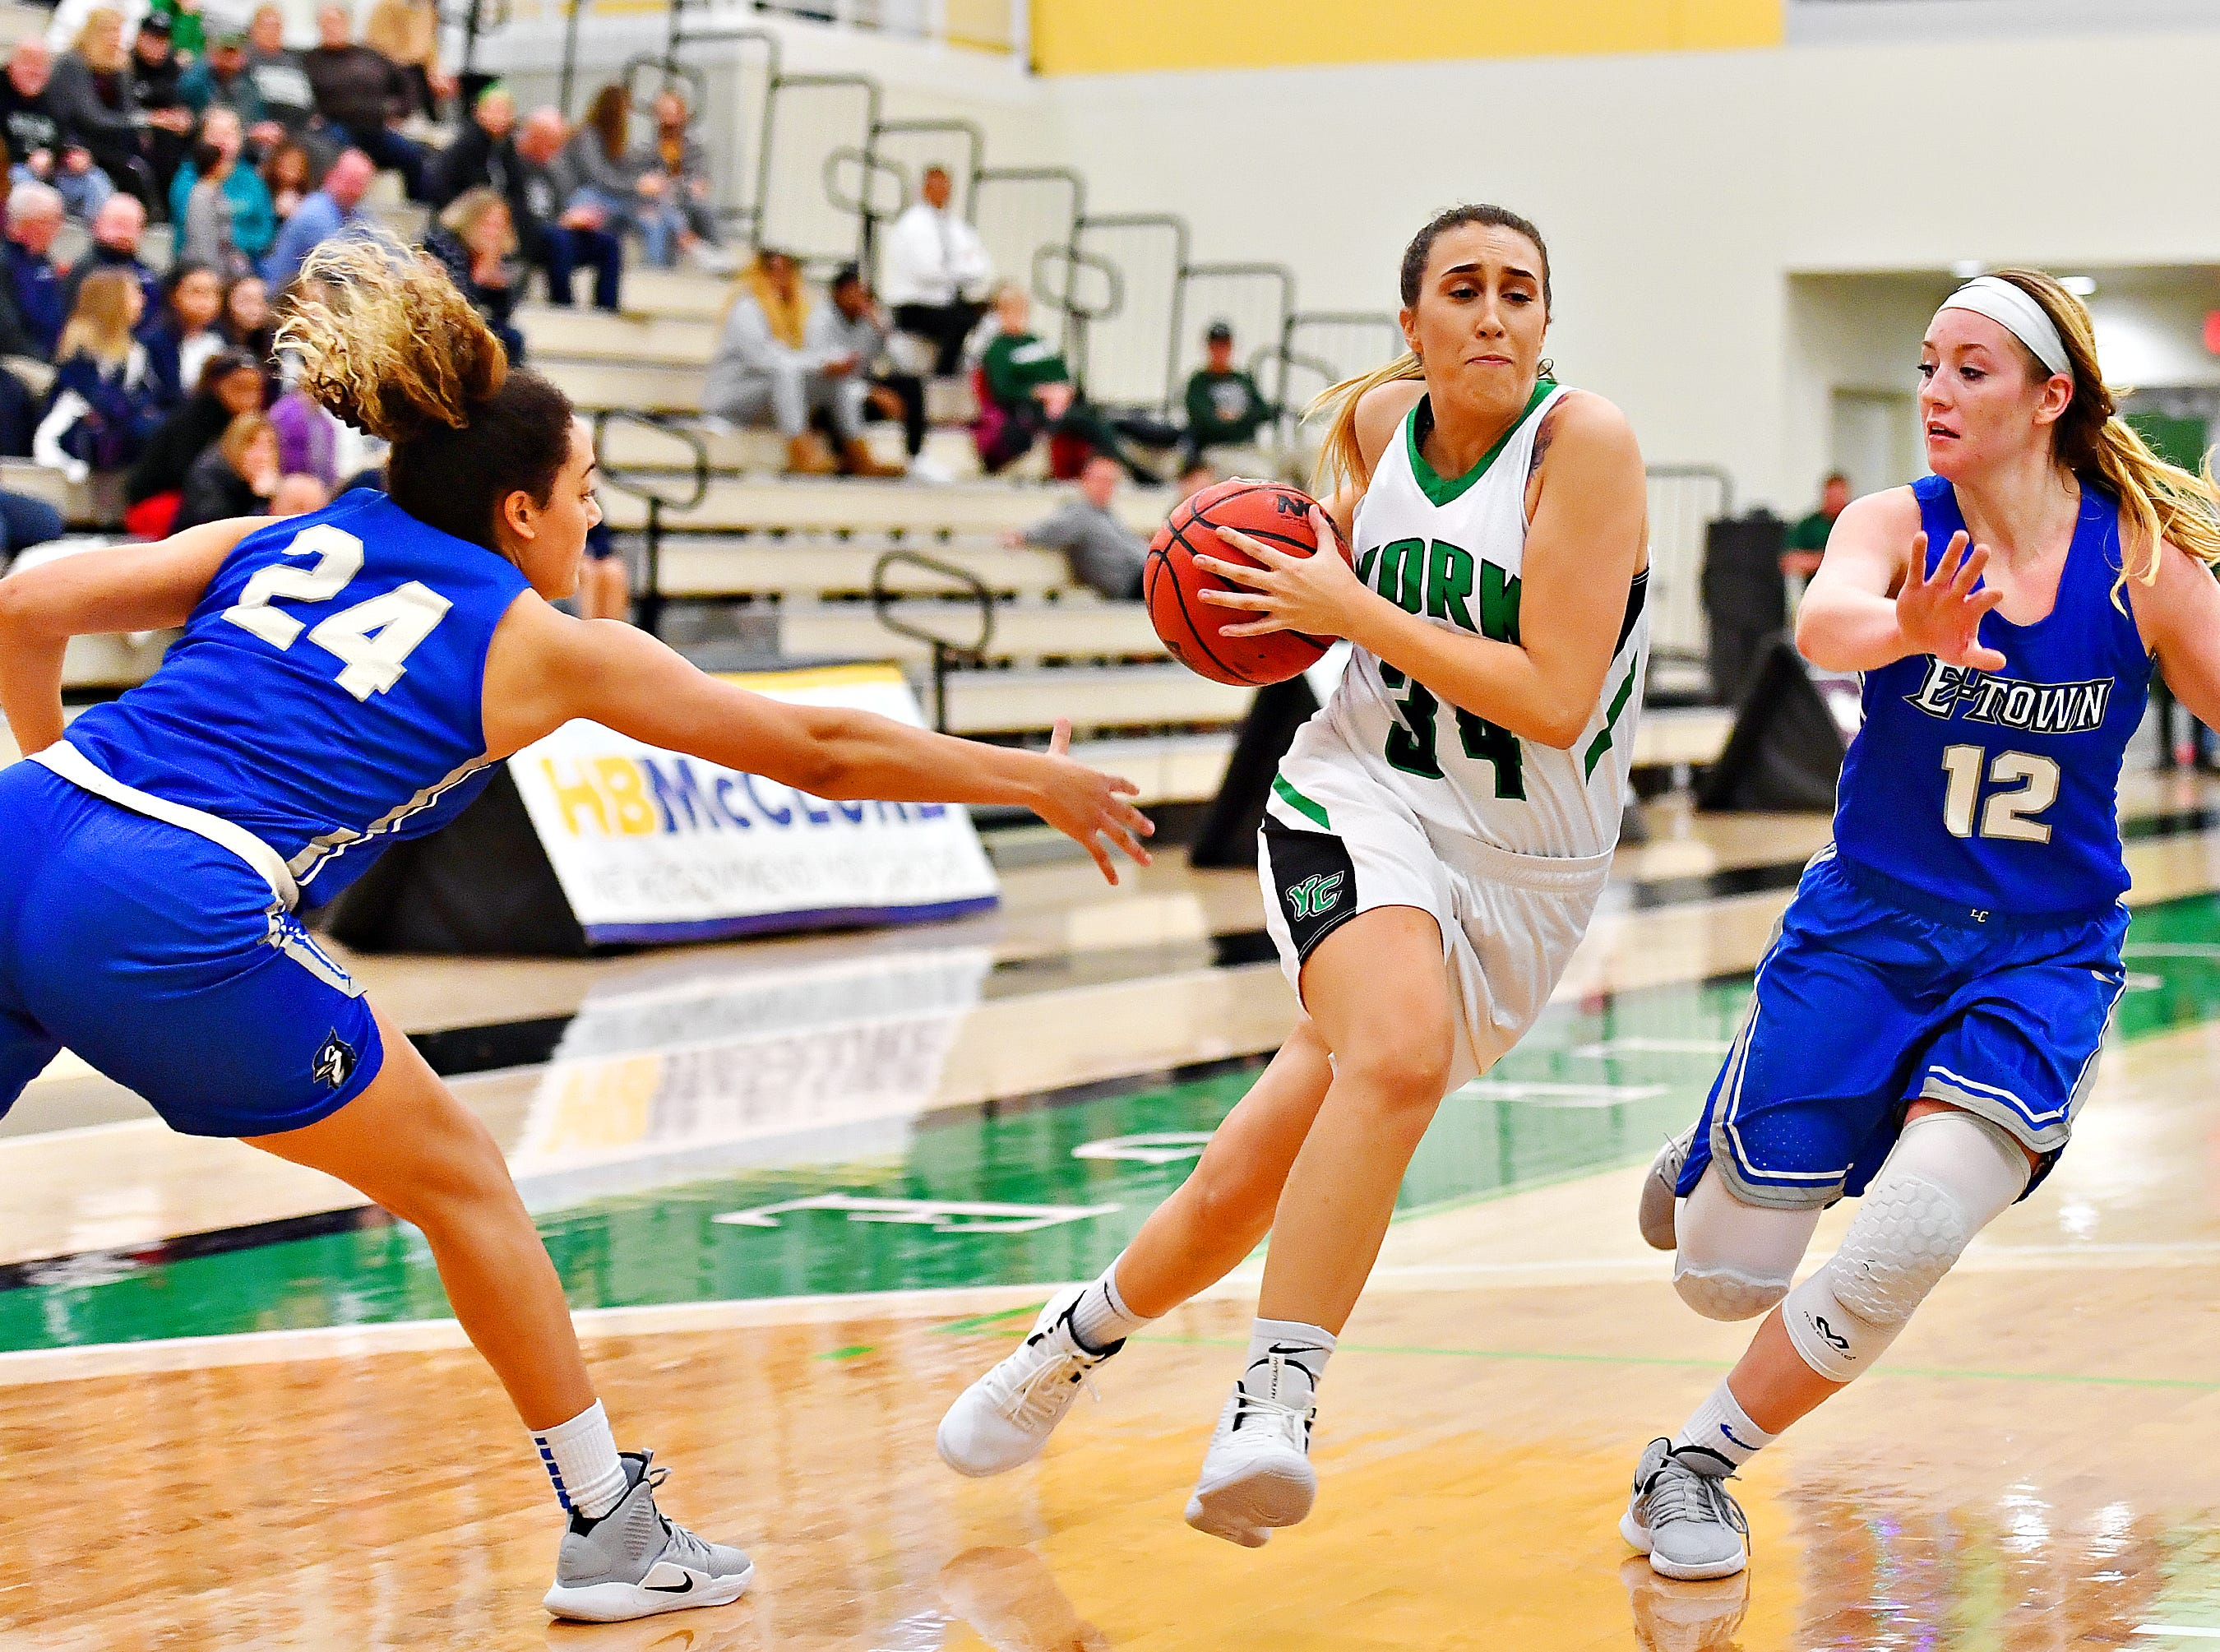 York College vs Elizabethtown during women's basketball action at Grumbacher Sport and Fitness Center in Spring Garden Township, Wednesday, Nov. 28, 2018. Elizabethtown would win the game 71-61. Dawn J. Sagert photo